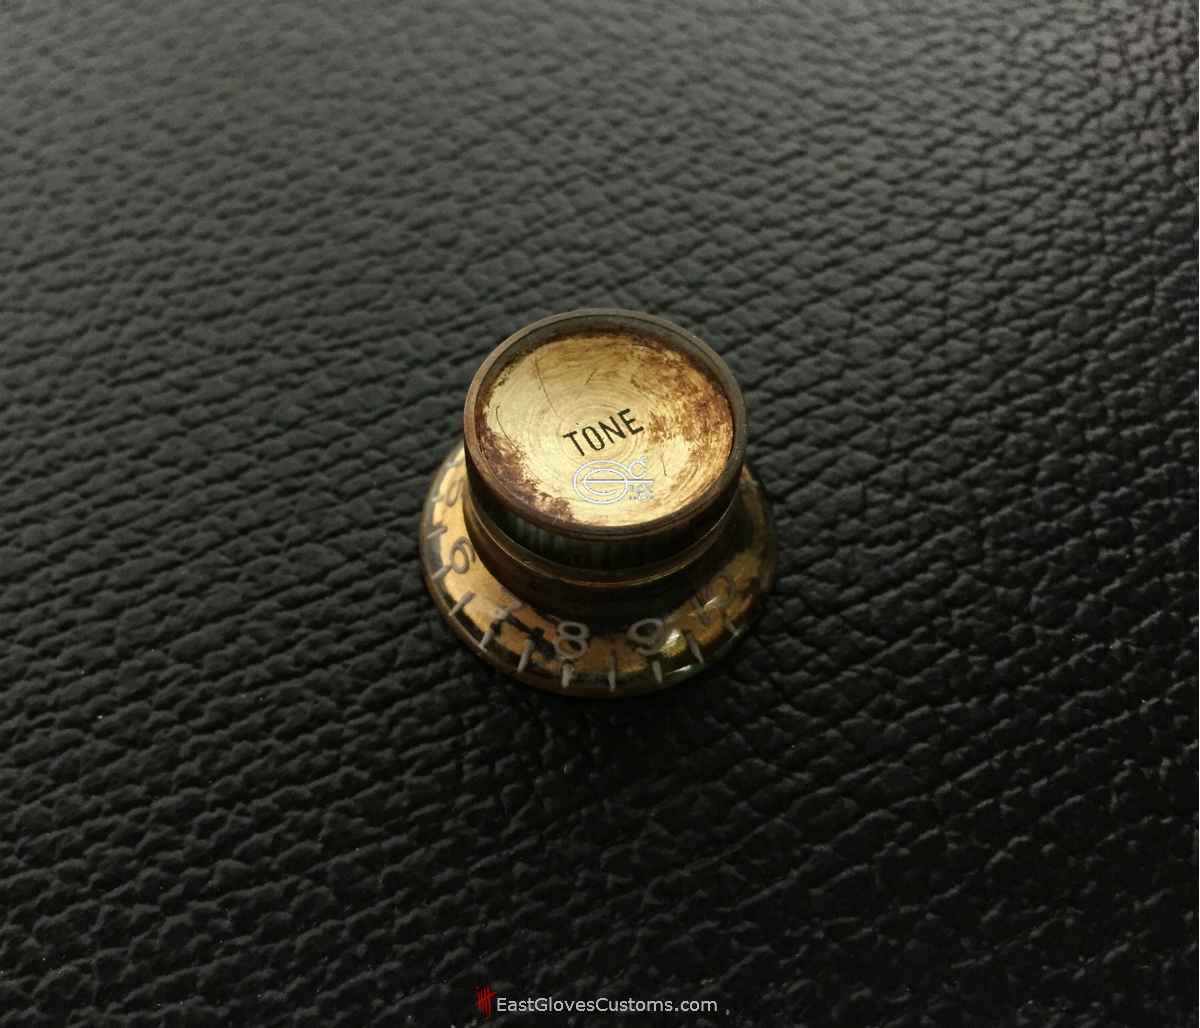 e20d1e761f4 ( GG10) 4 PCS GIBSON LES PAUL TOP HAT STYLE GOLD REFLECTOR OXIDIZED KNOBS  RELIC DISTRESSED AGED (SOLD)